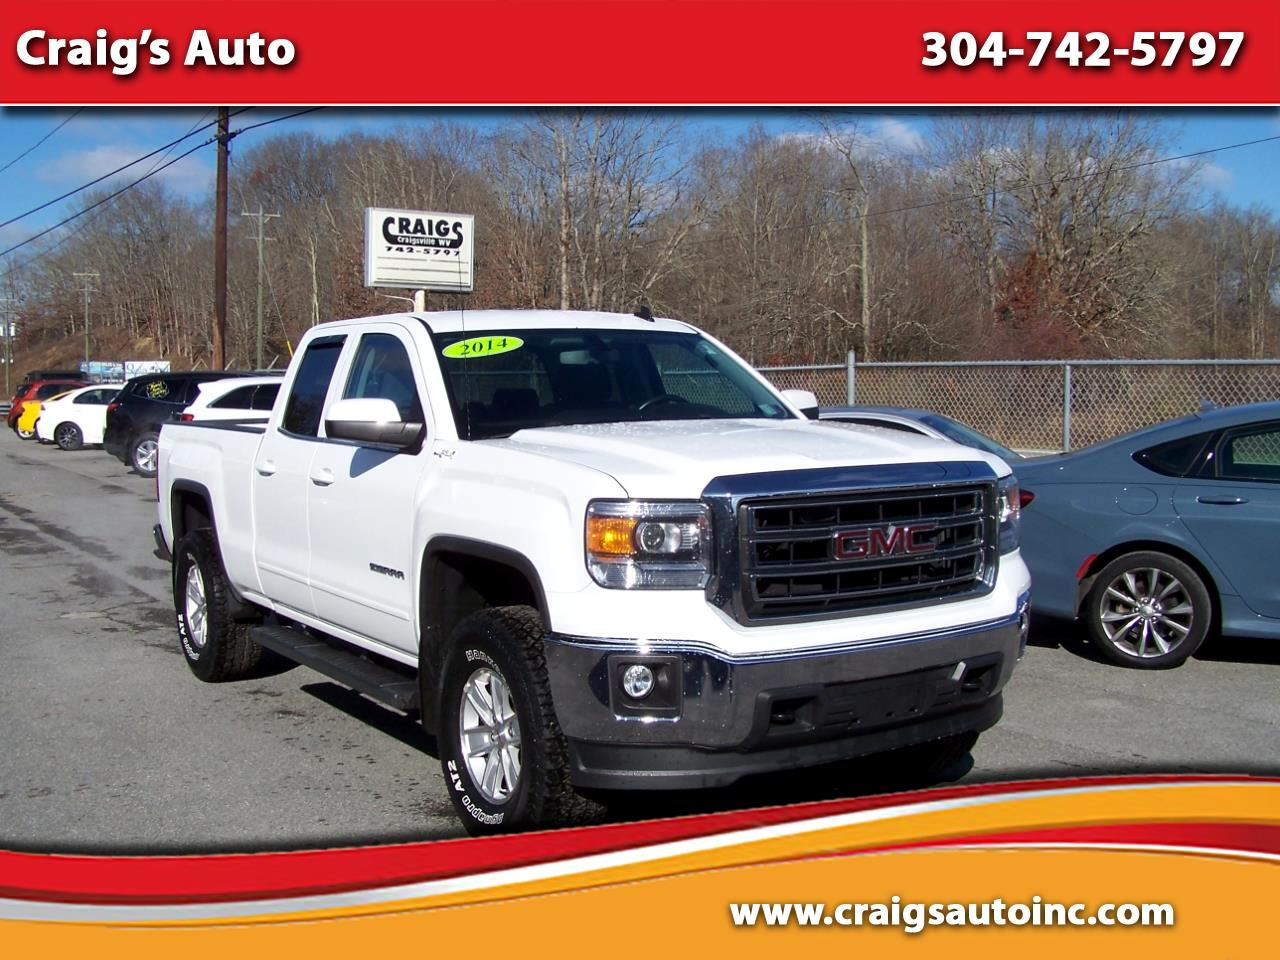 Used 2014 Gmc Sierra 1500 4wd Double Cab 143 5 Sle For Sale In Craigsville Wv 26205 Craig S Auto